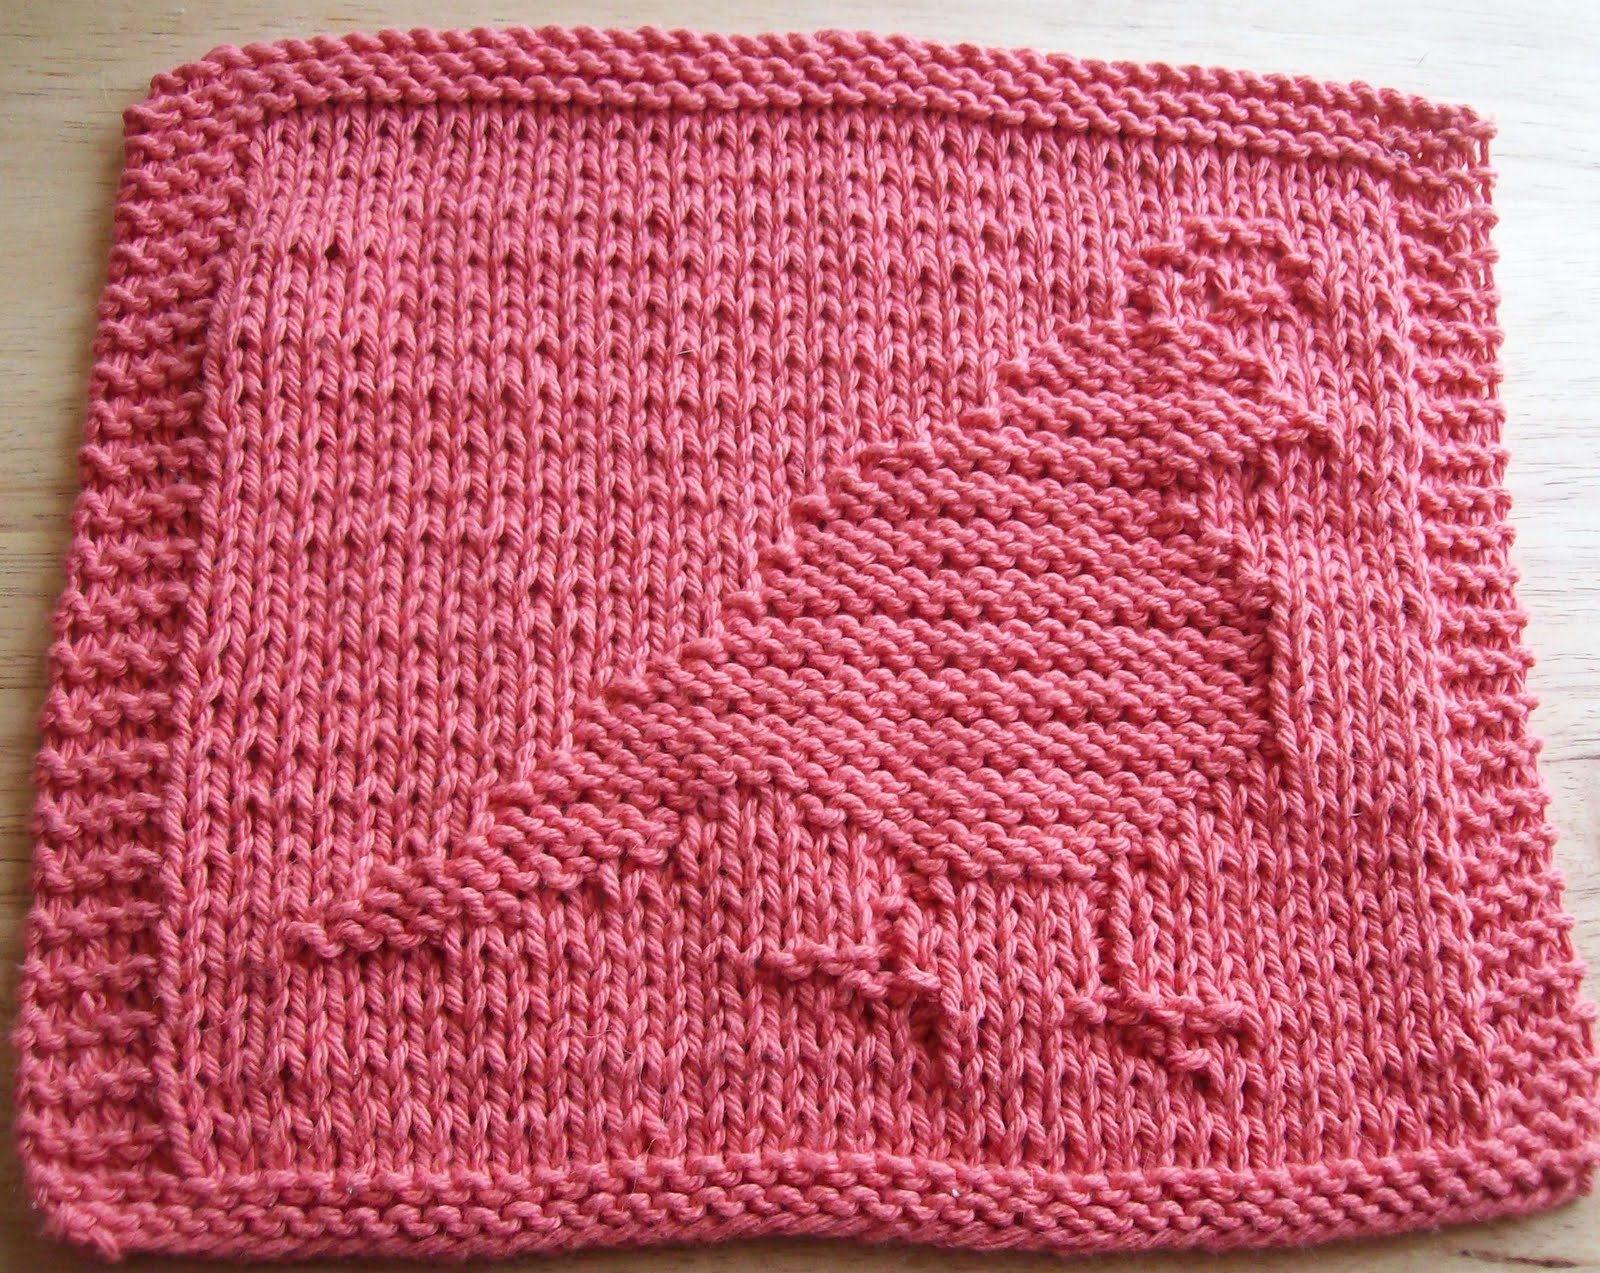 Dishcloth Knitting Pattern : DigKnitty Designs: Partridge Knit Dishcloth Pattern